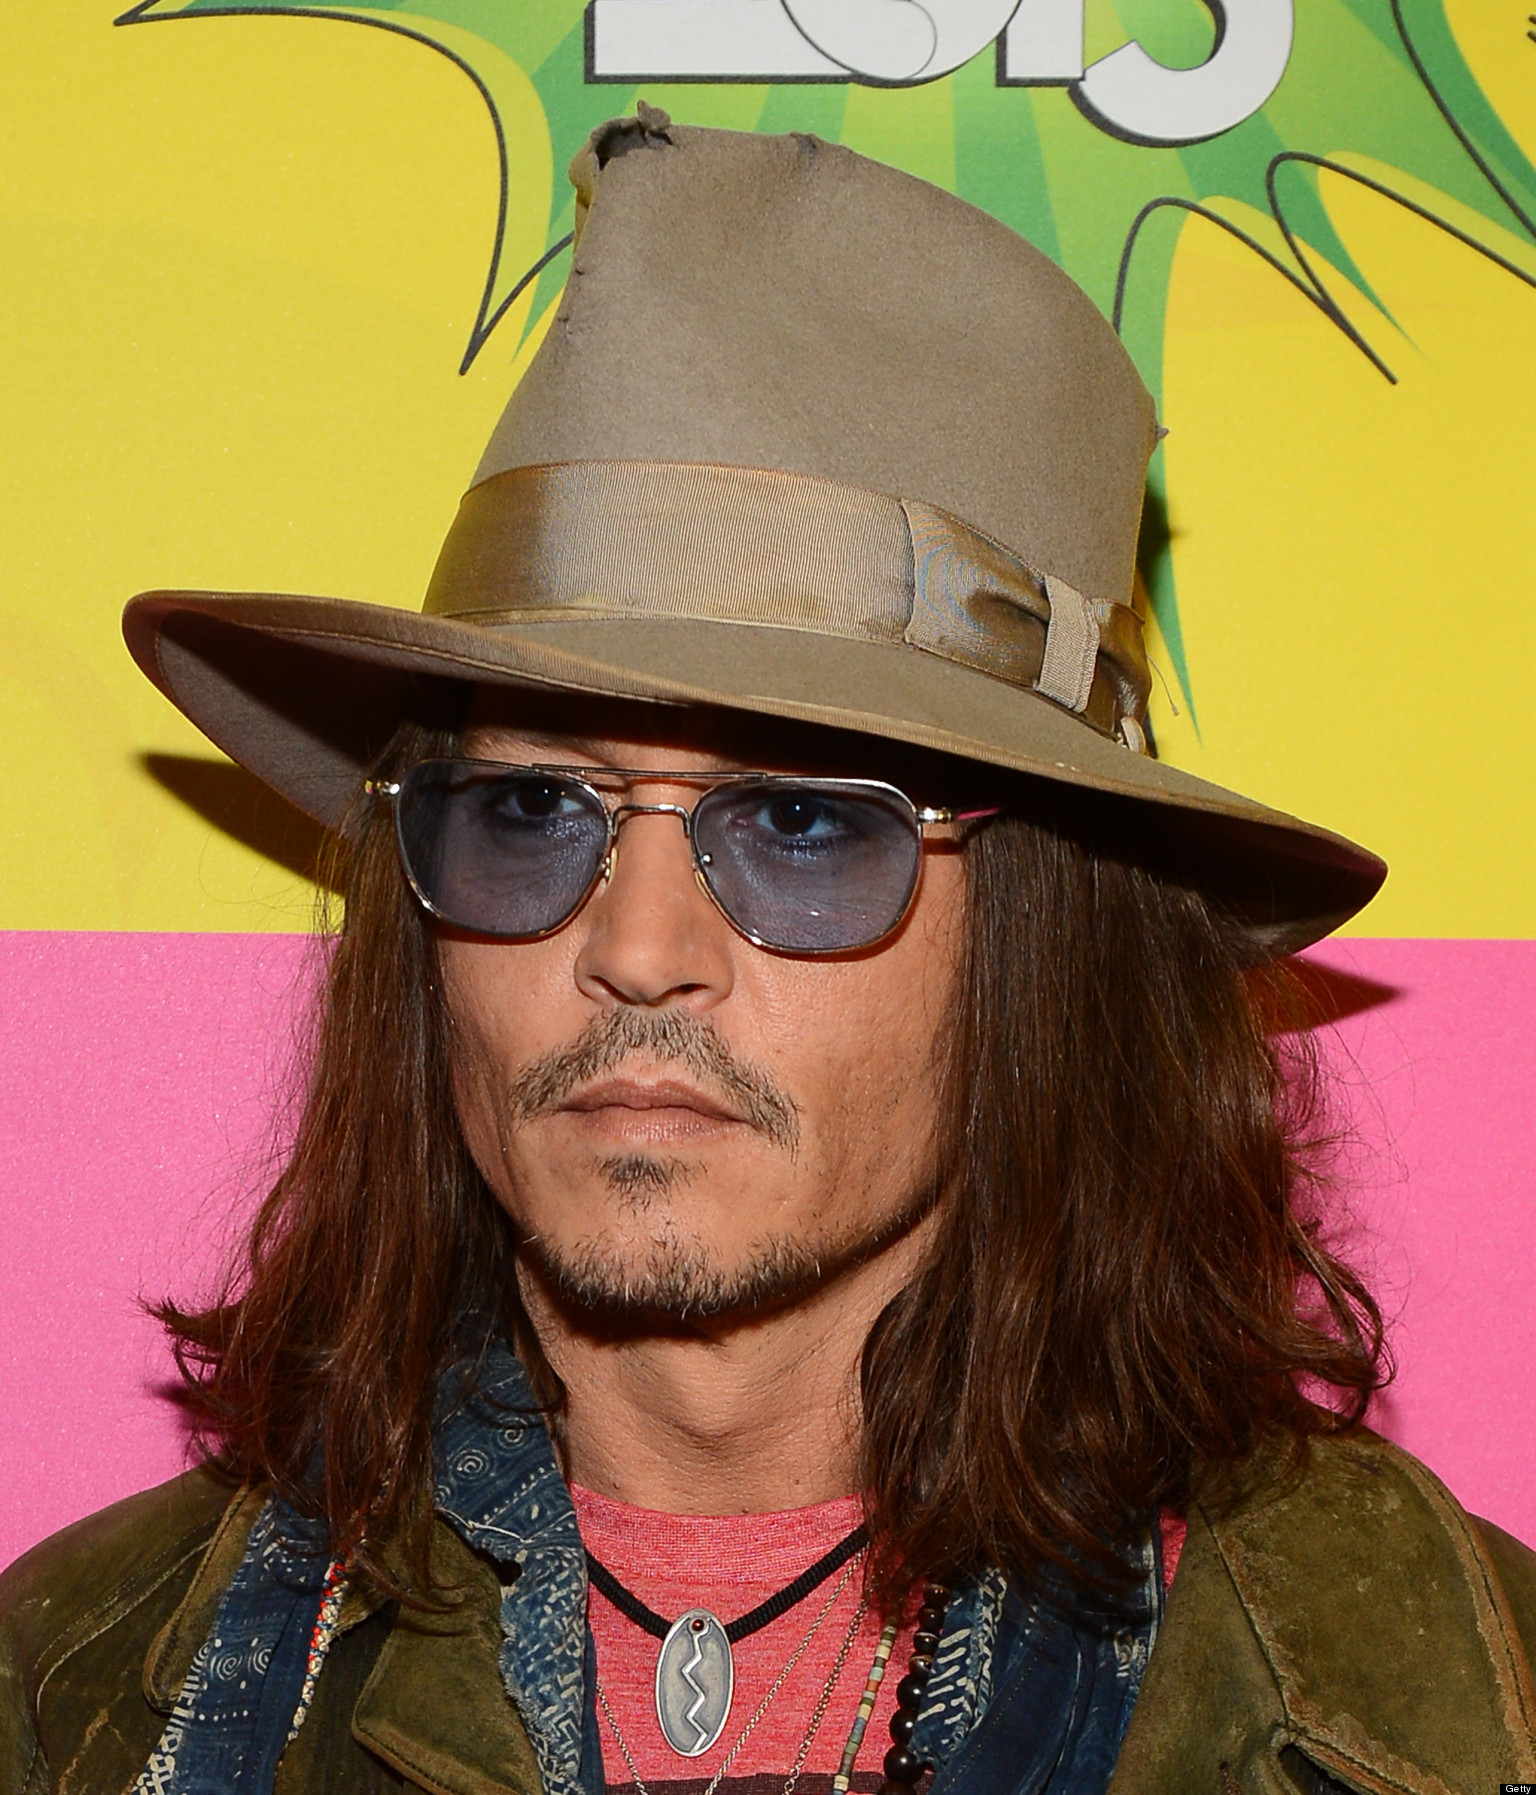 Johnny Depp: Johnny Depp And Other Celebrities Who Are Turning 50 This